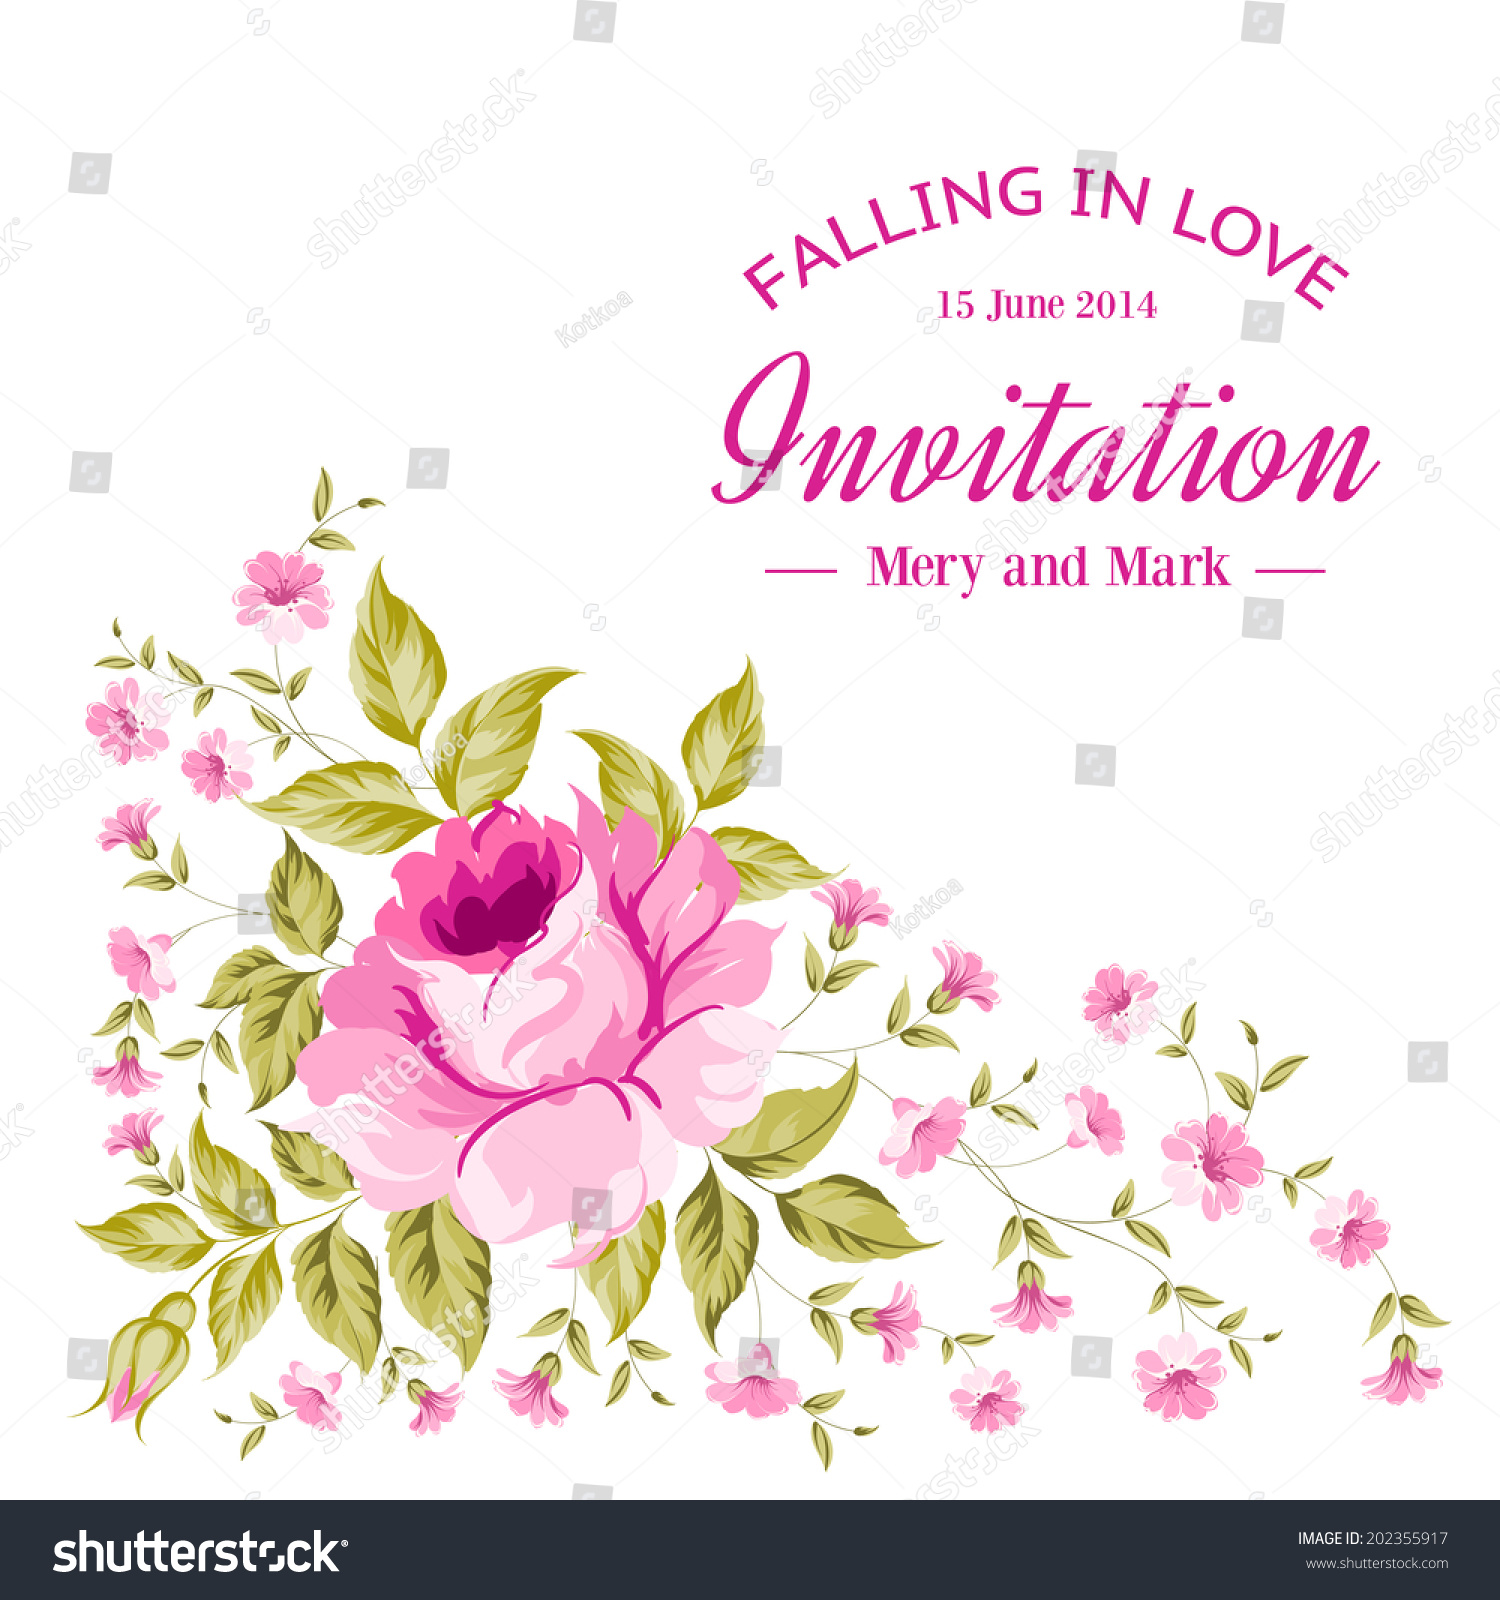 International womens day posterfloral greeting card cute card floral greeting card cute card design template for birthday anniversary wedding baby and bride showeretslorful detailed vector illustration m4hsunfo